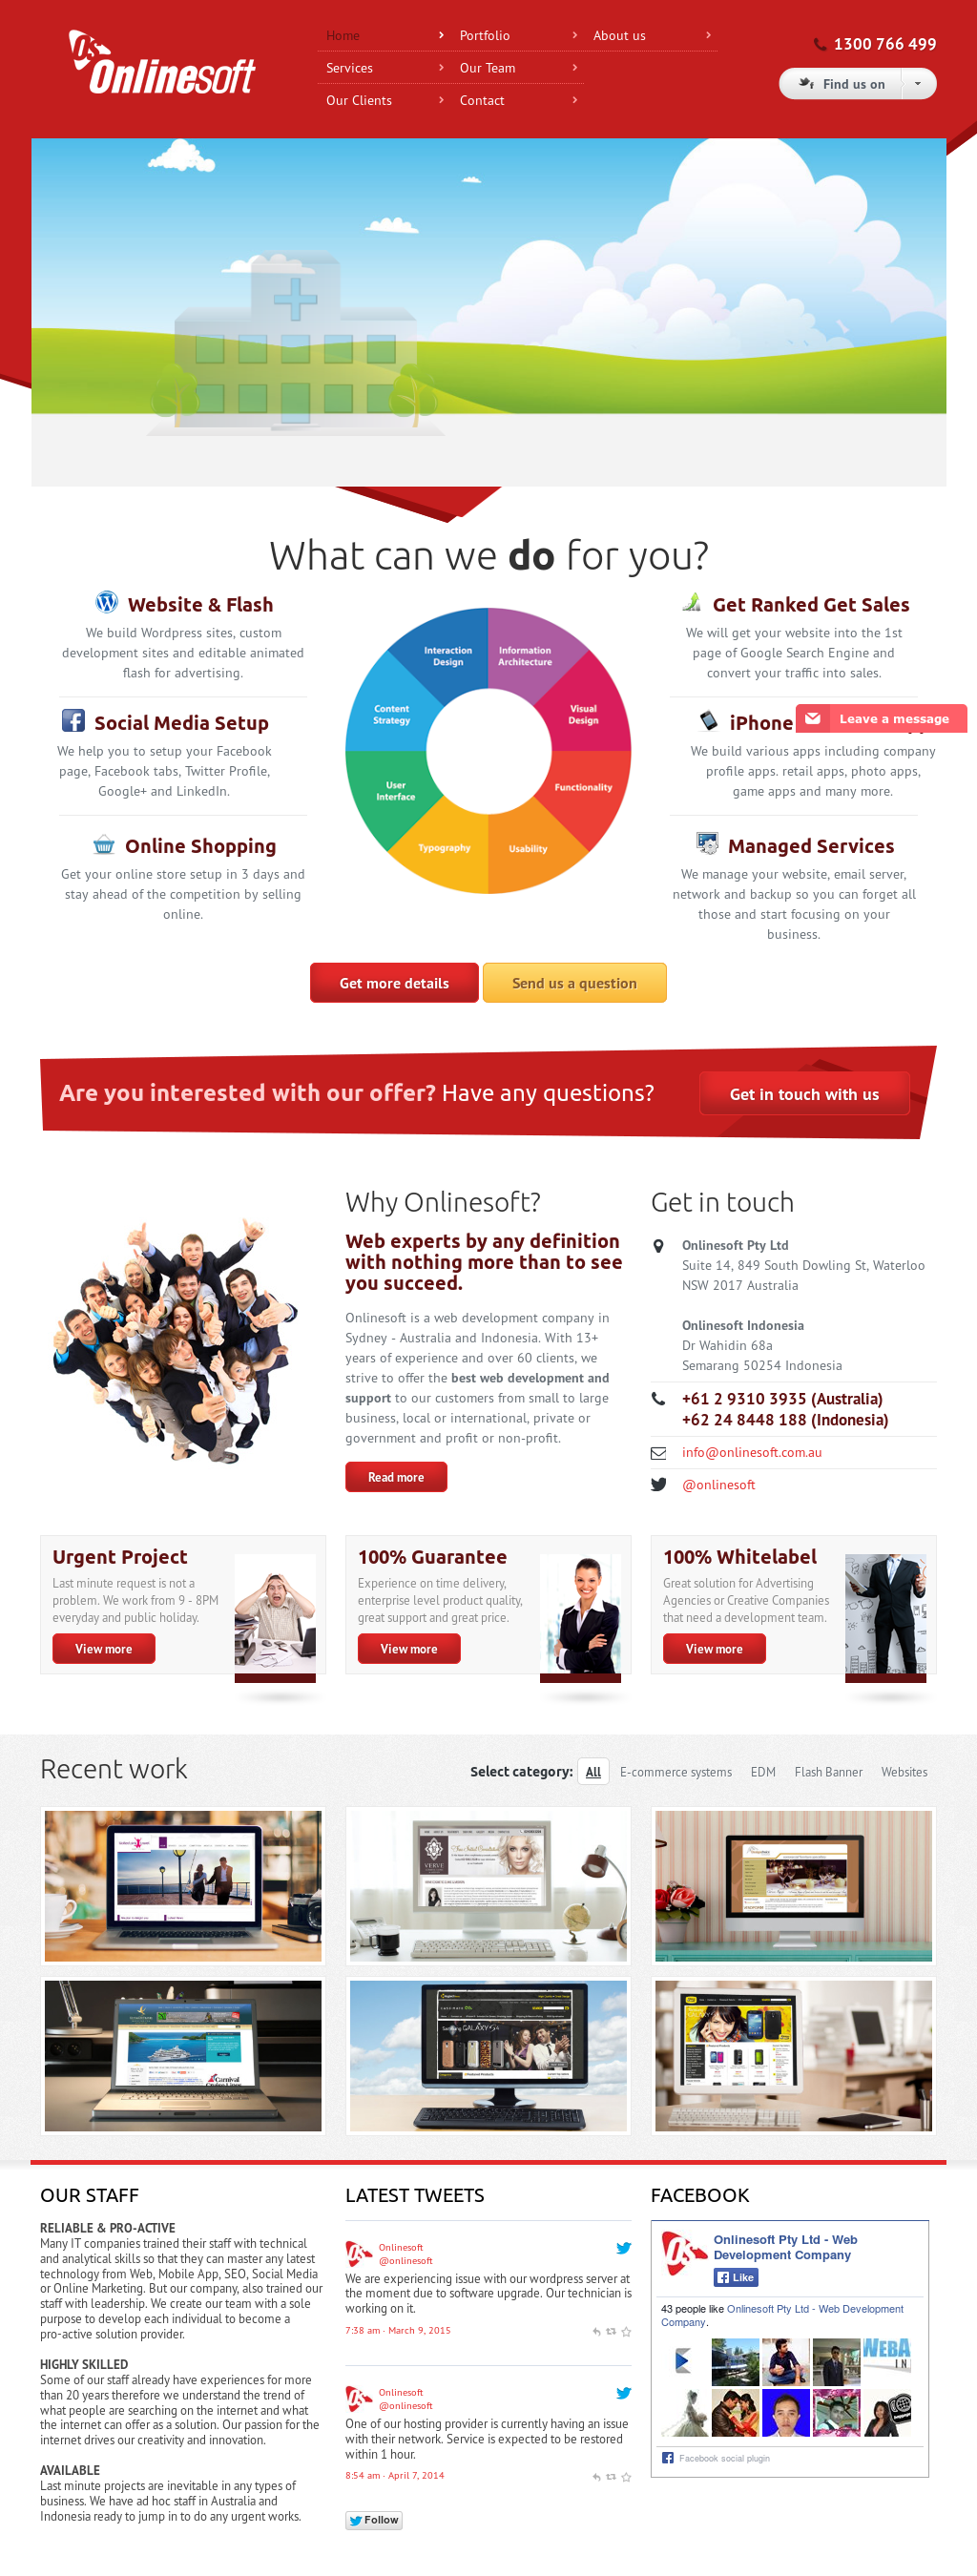 Onlinesoft Competitors, Revenue and Employees - Owler Company Profile